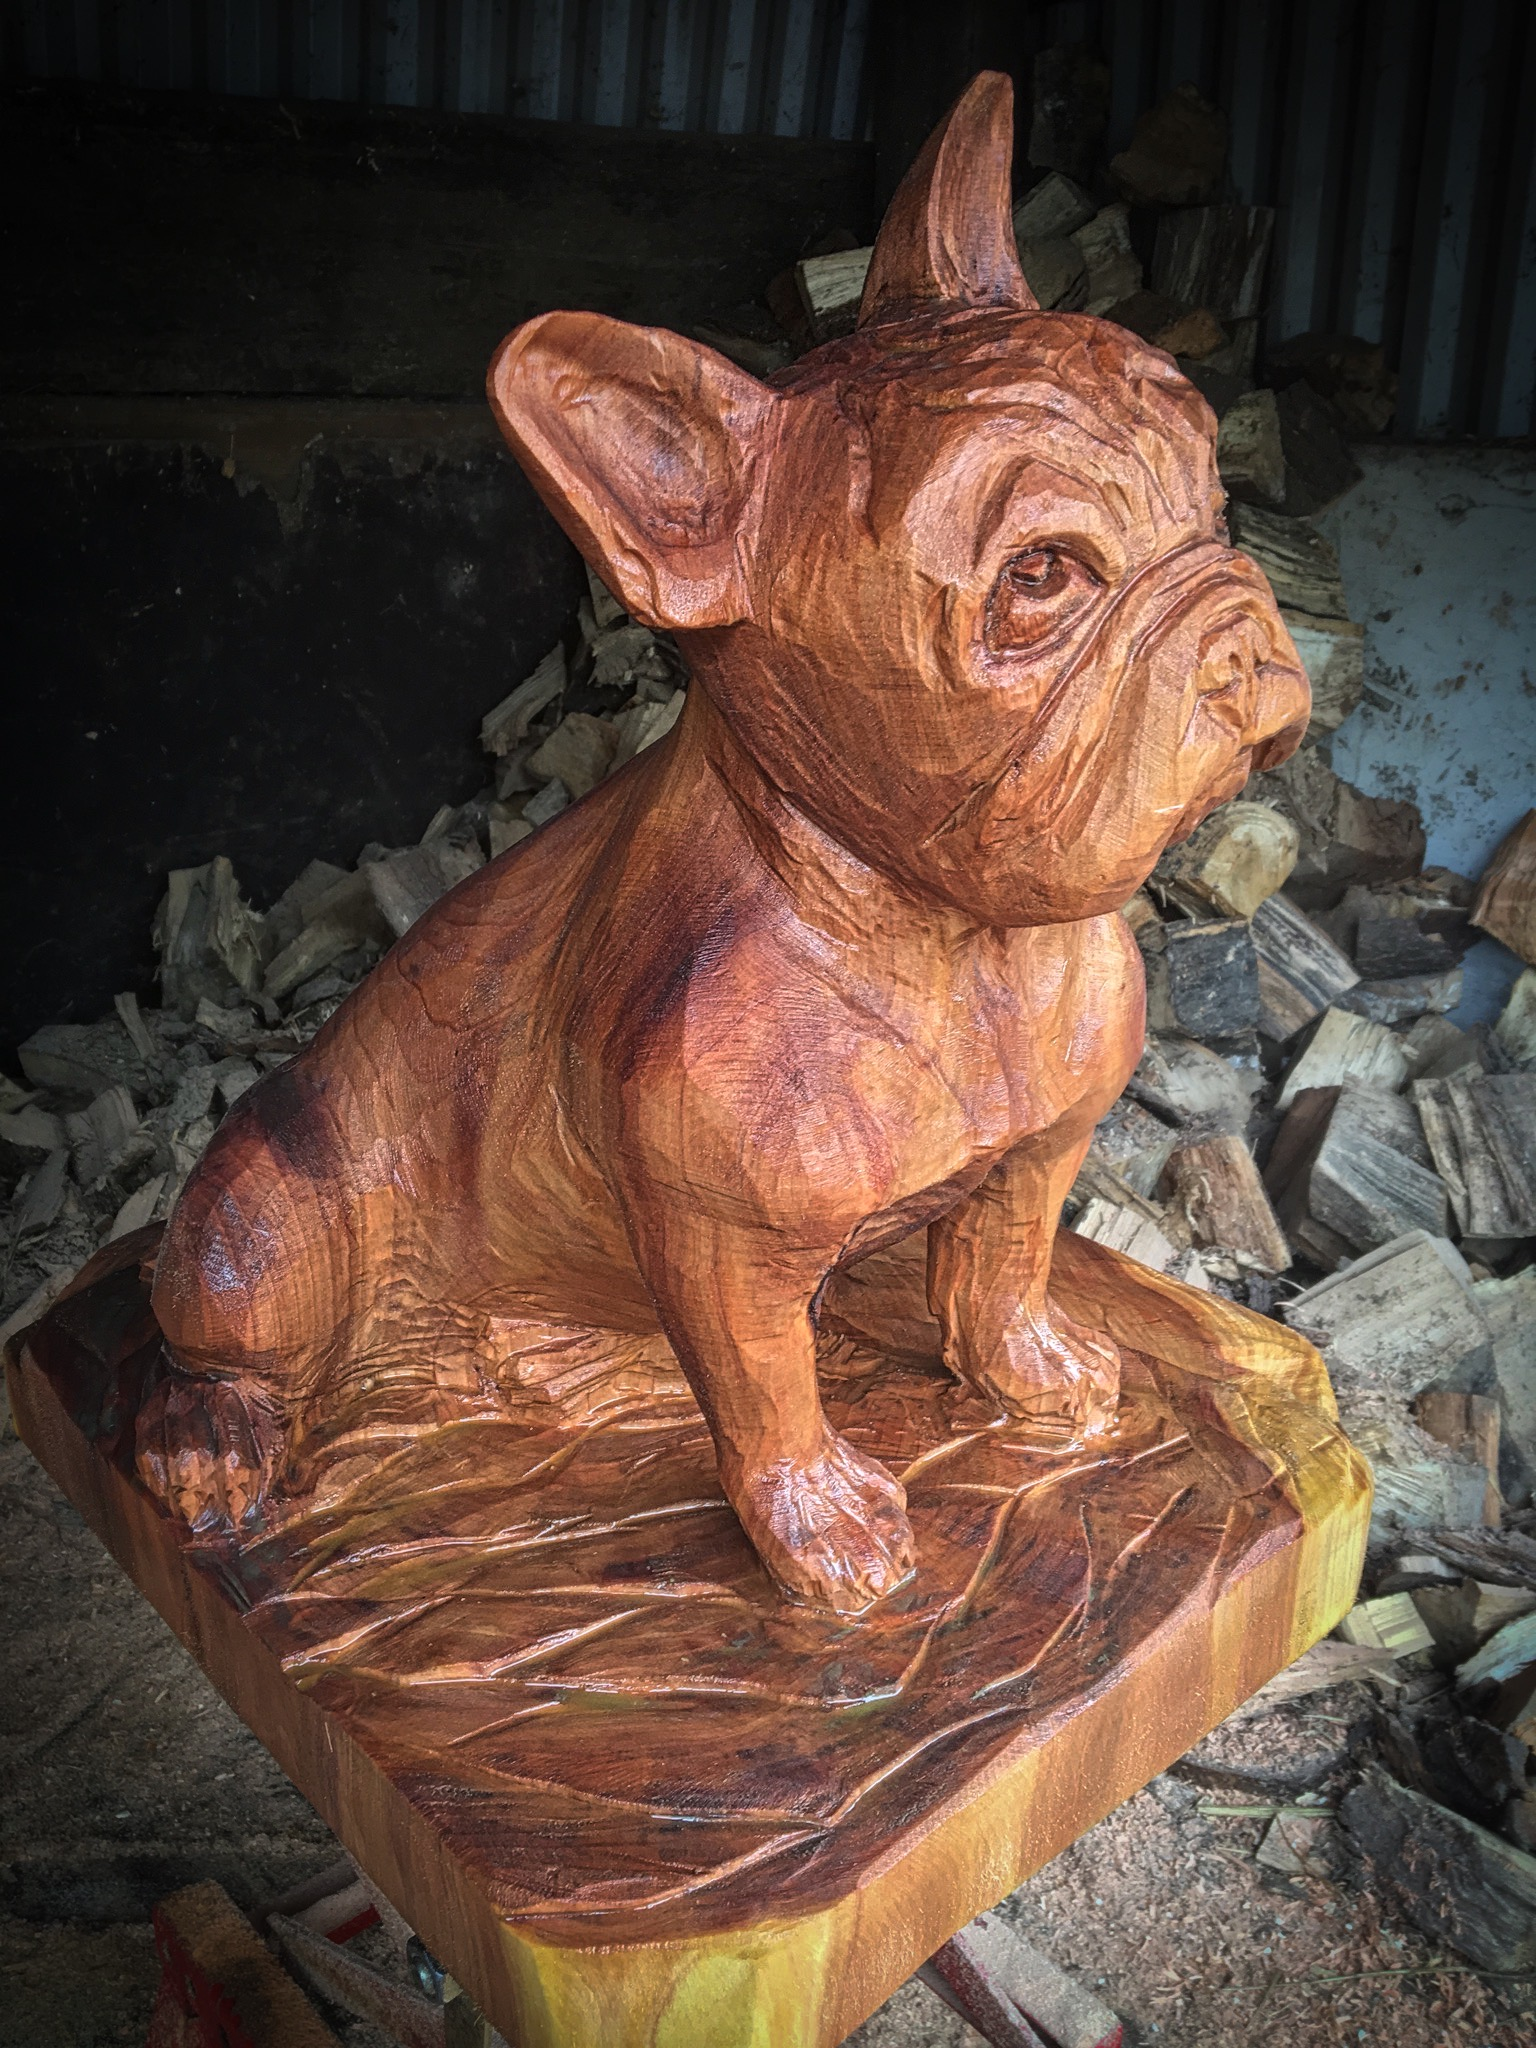 Carving of a French Bulldog carved by Neith Chainsaw Carving Artists